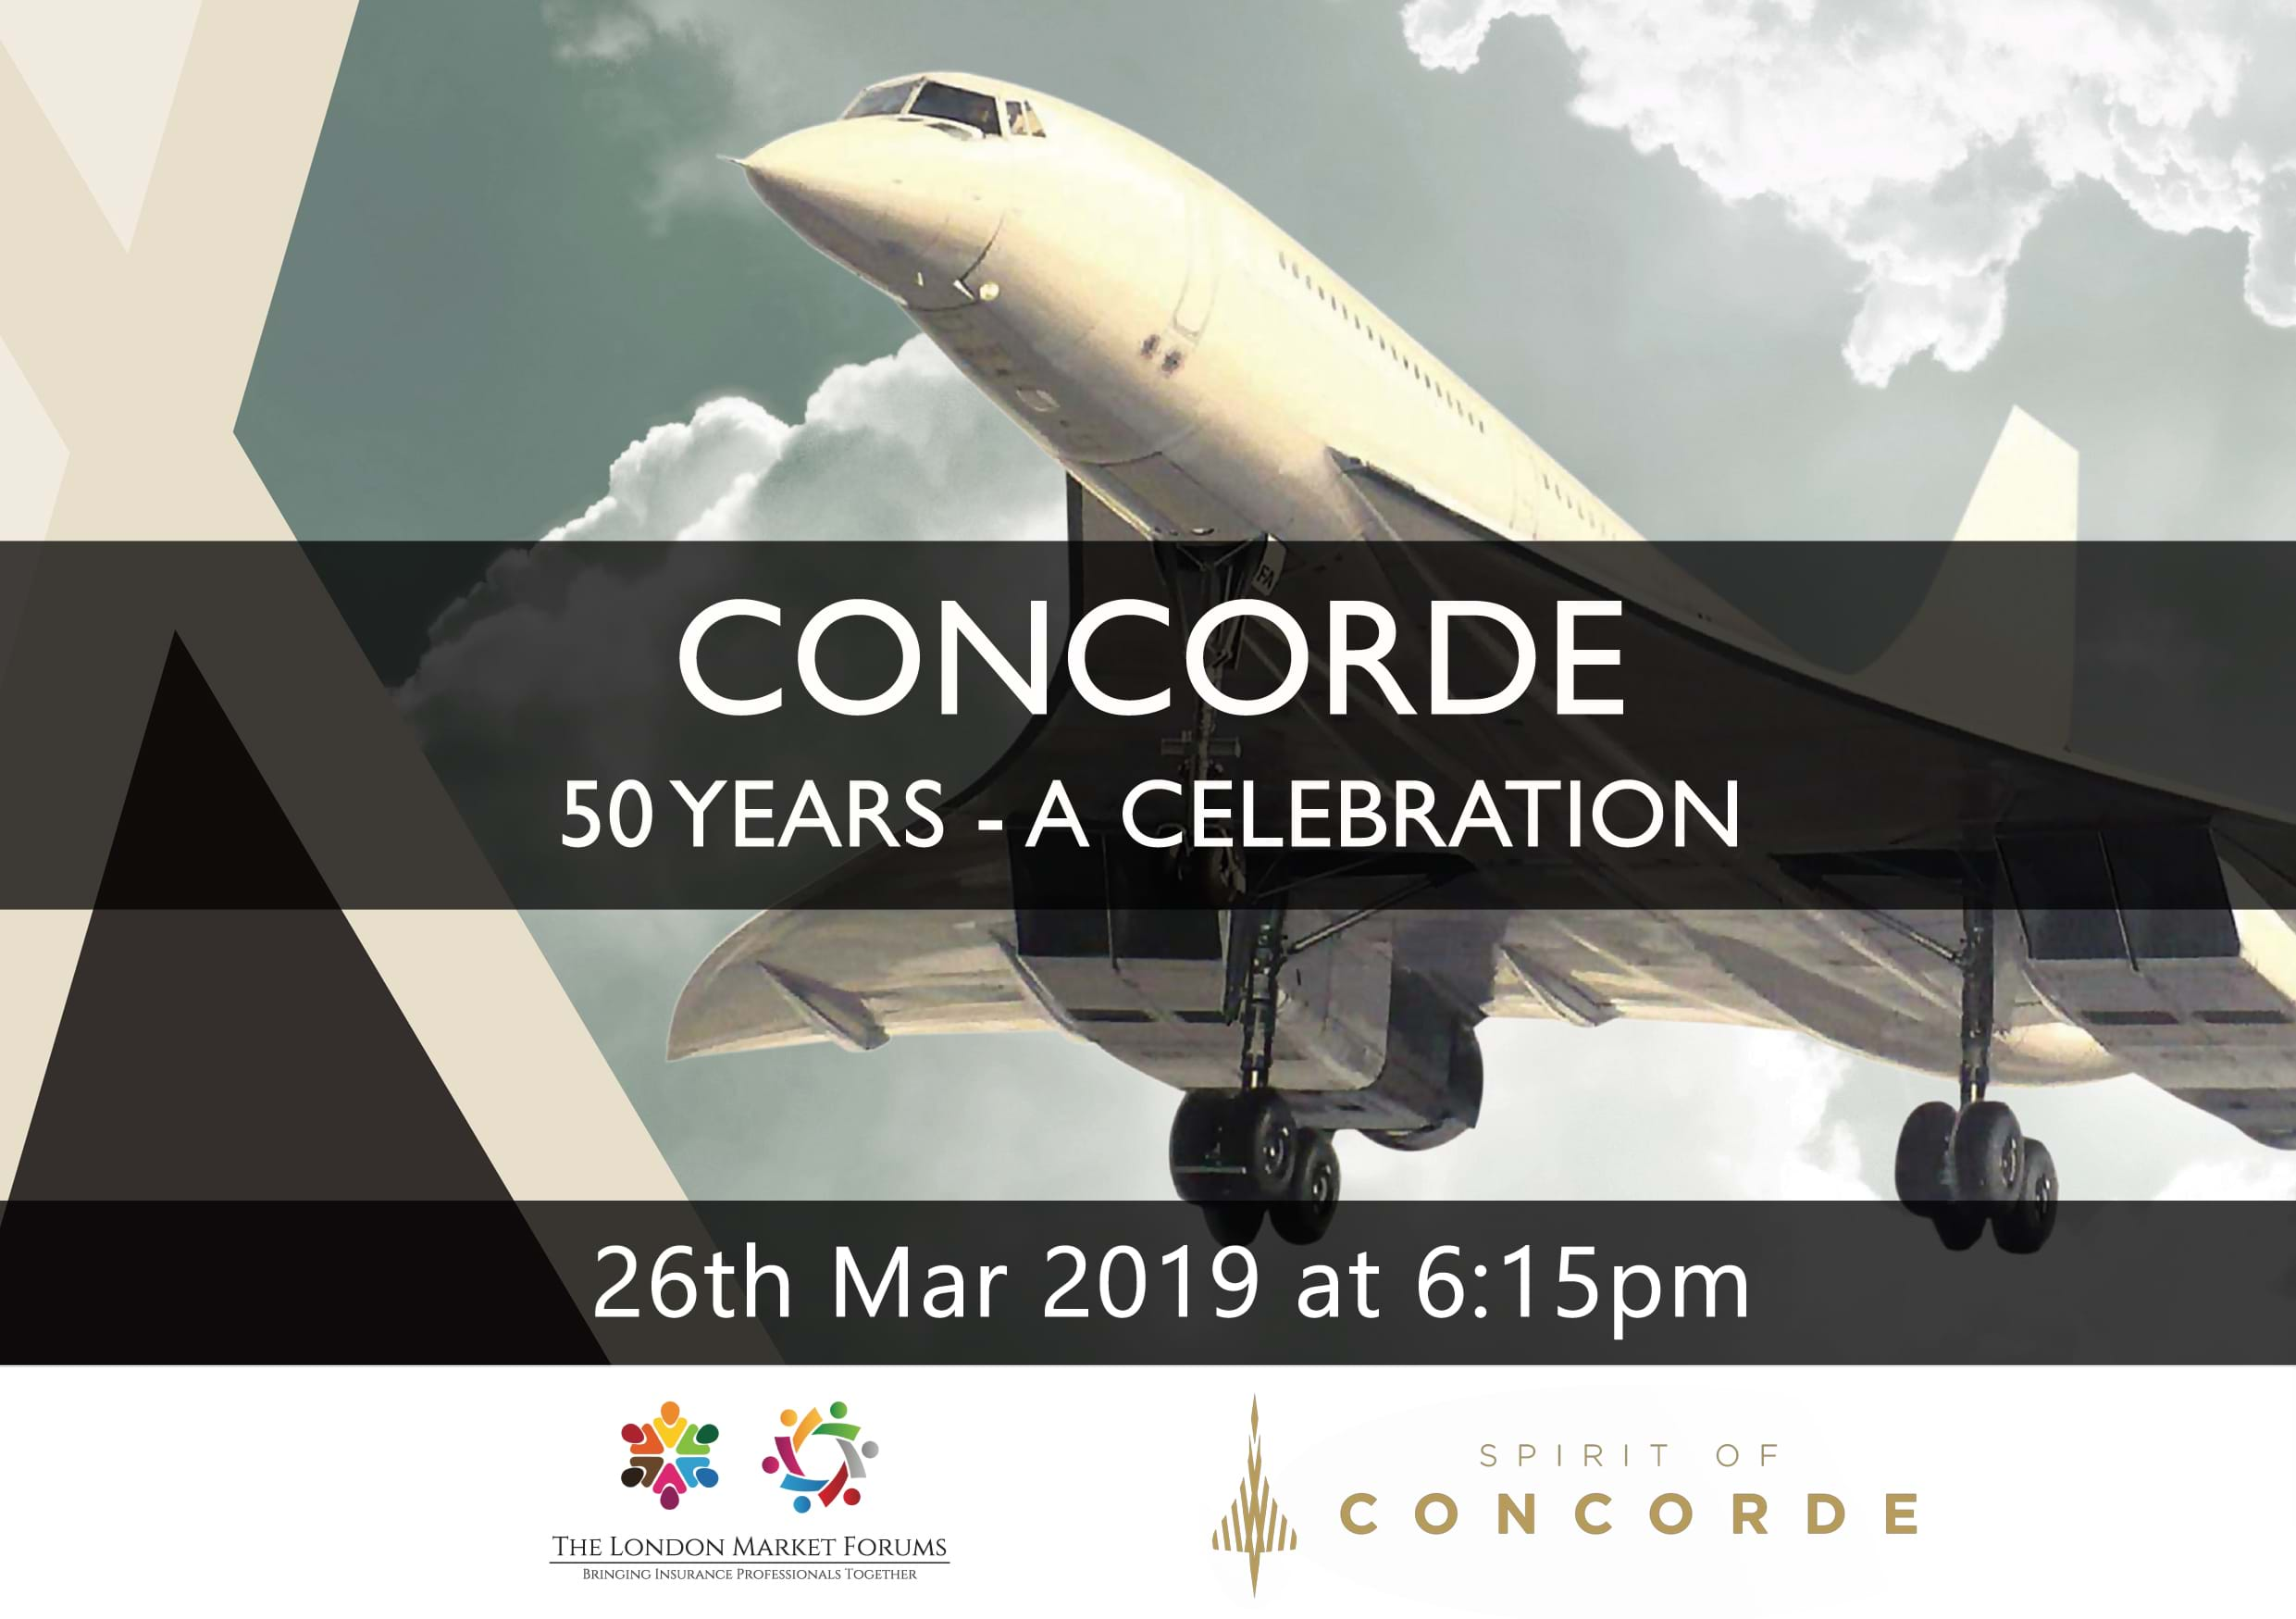 Concorde 50 Years - A Celebration